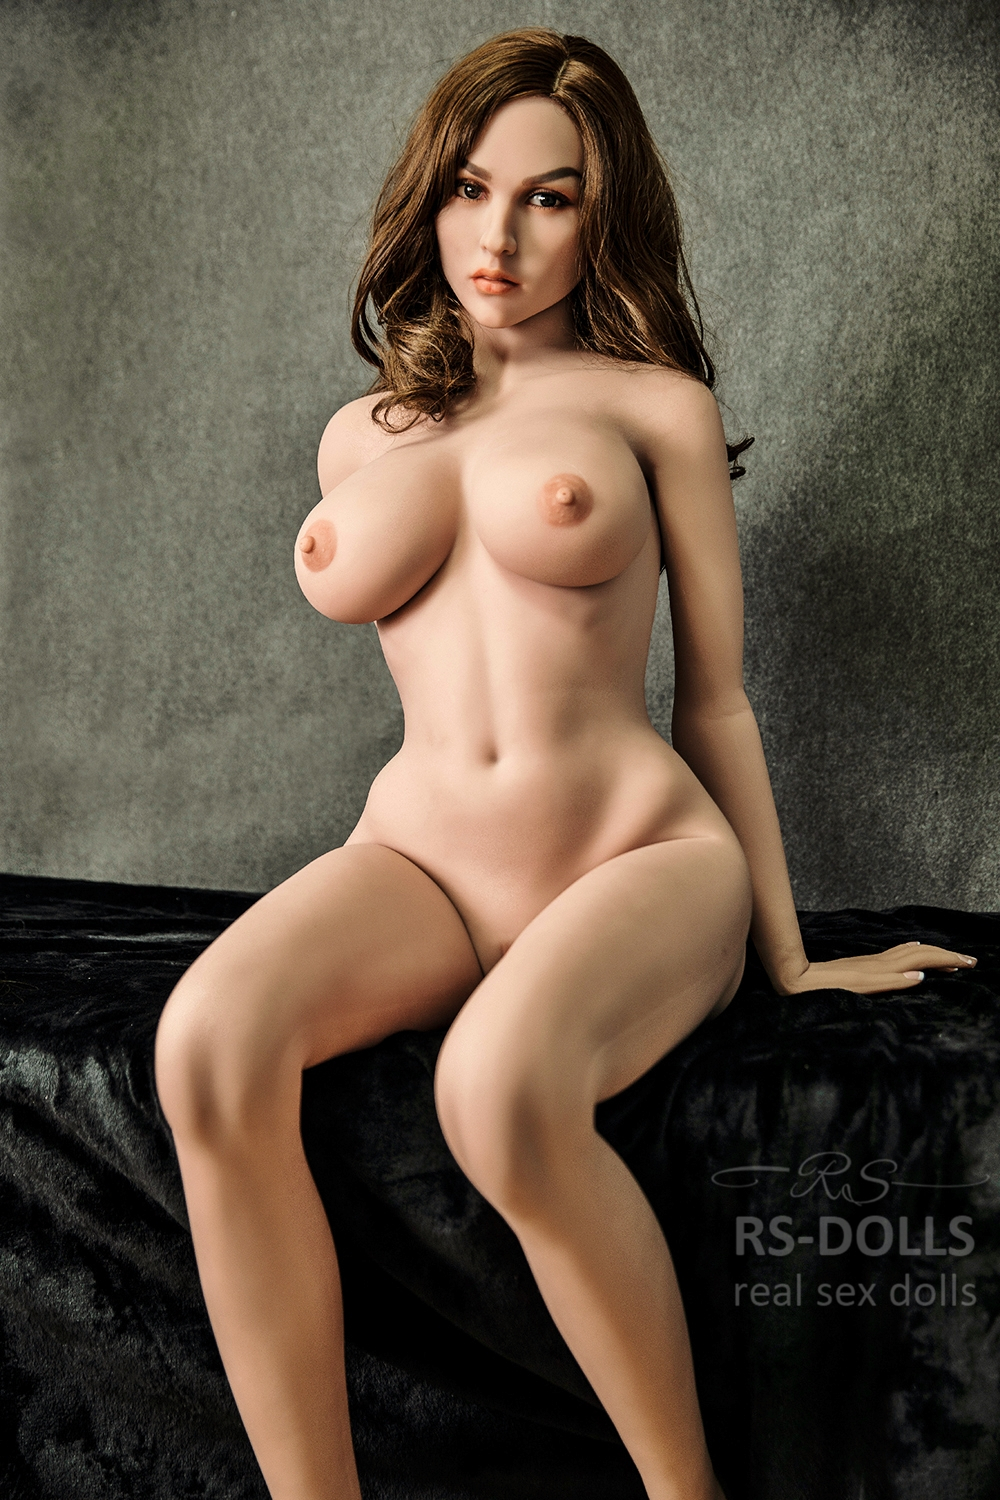 Ryda RSD PrimeLine real sex doll RS DOLLS Sexpuppen 6